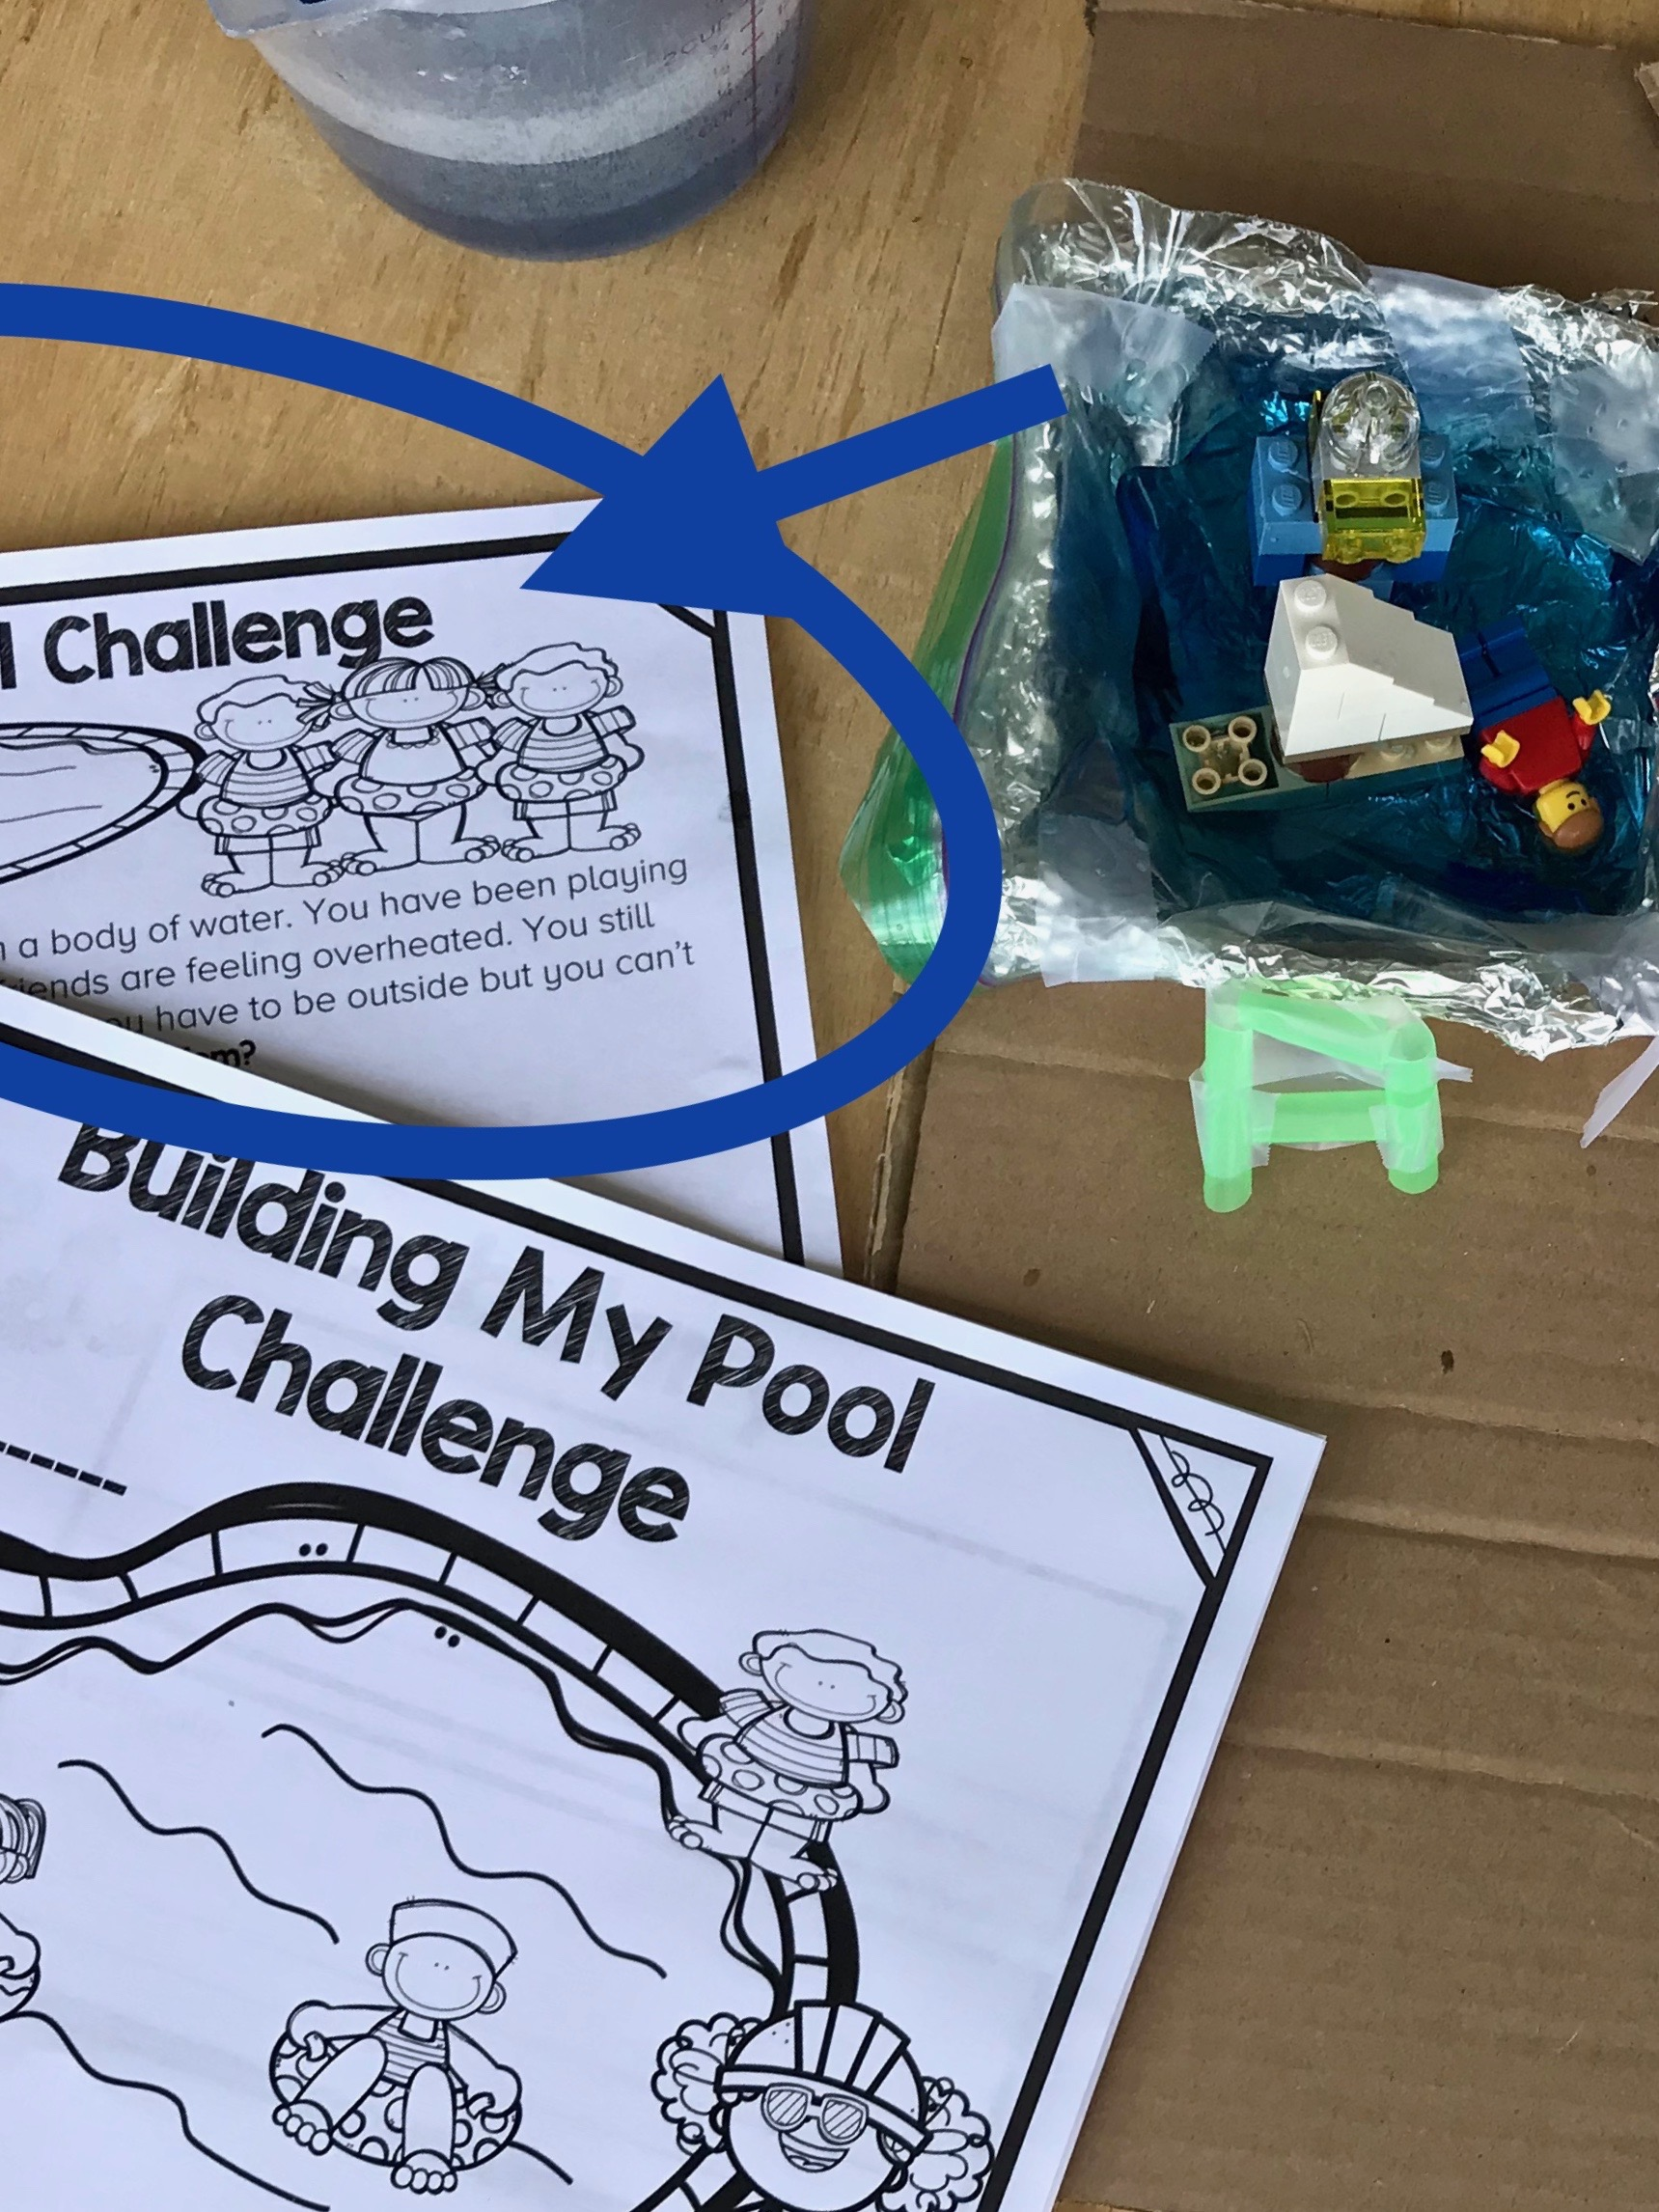 Free Summer Challenge Card: Build a Pool